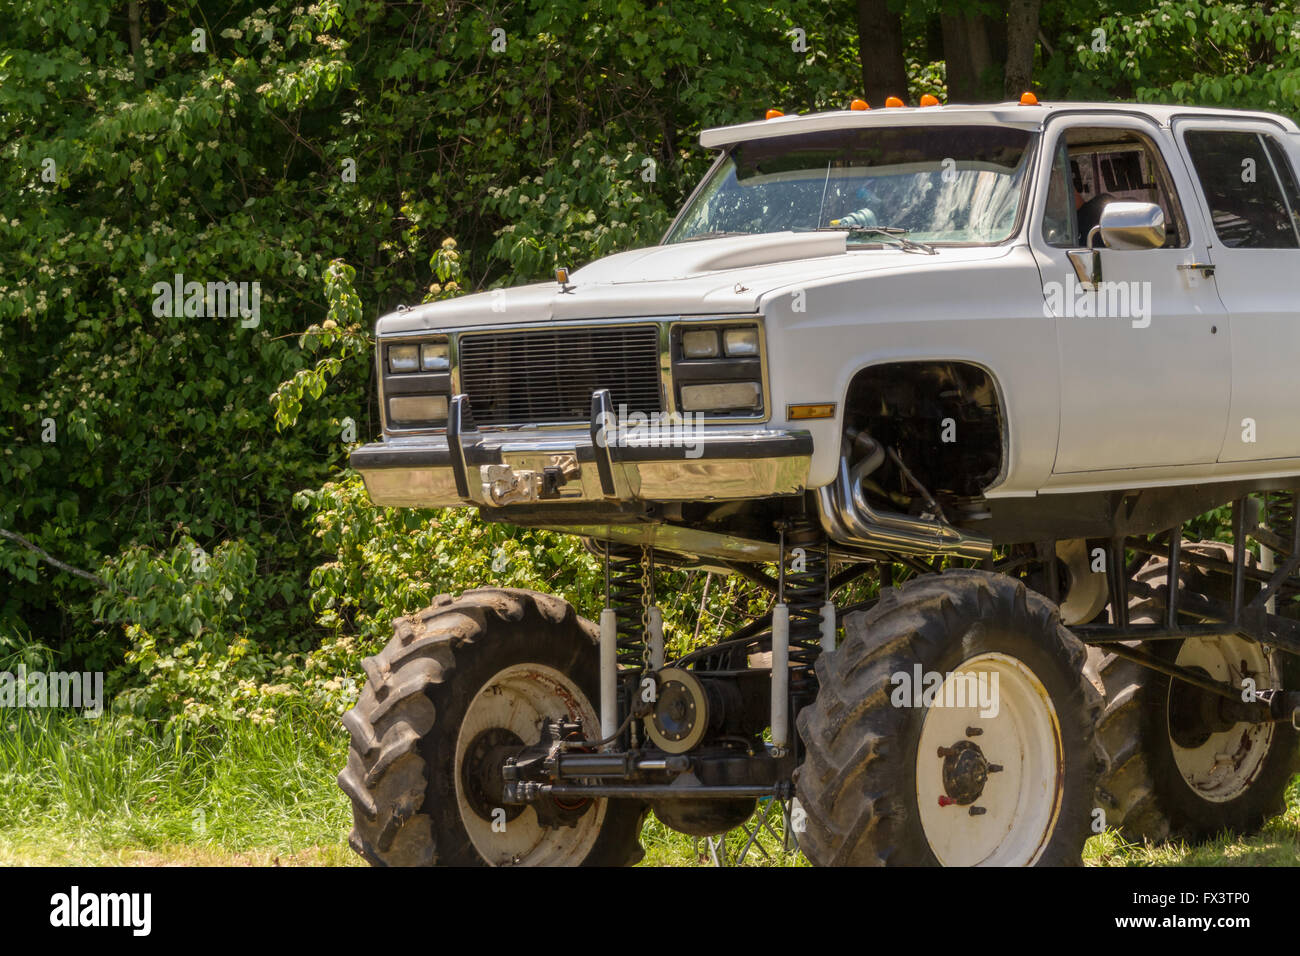 a white pickup truck modified as a monster truck stock photo